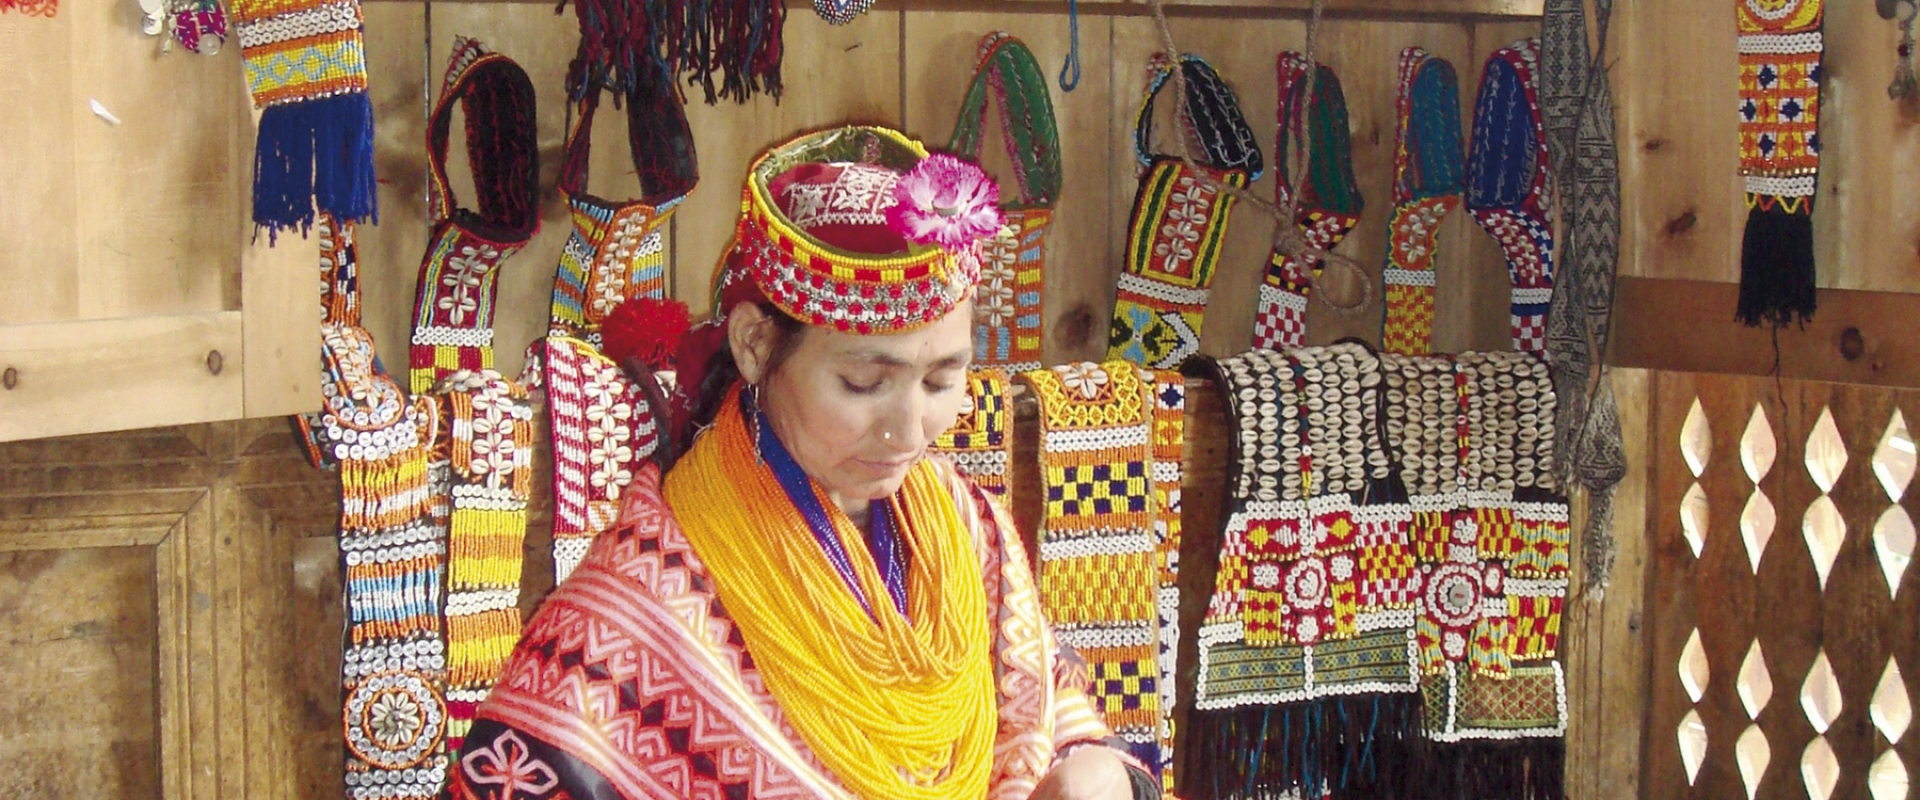 FMFB-P has provided micro loans in the mountainous valley of Chitral called Kalash where this women is making a traditional Kalashi dress in her small shop. Taking a micro loan allows women like this one to send her children to school.